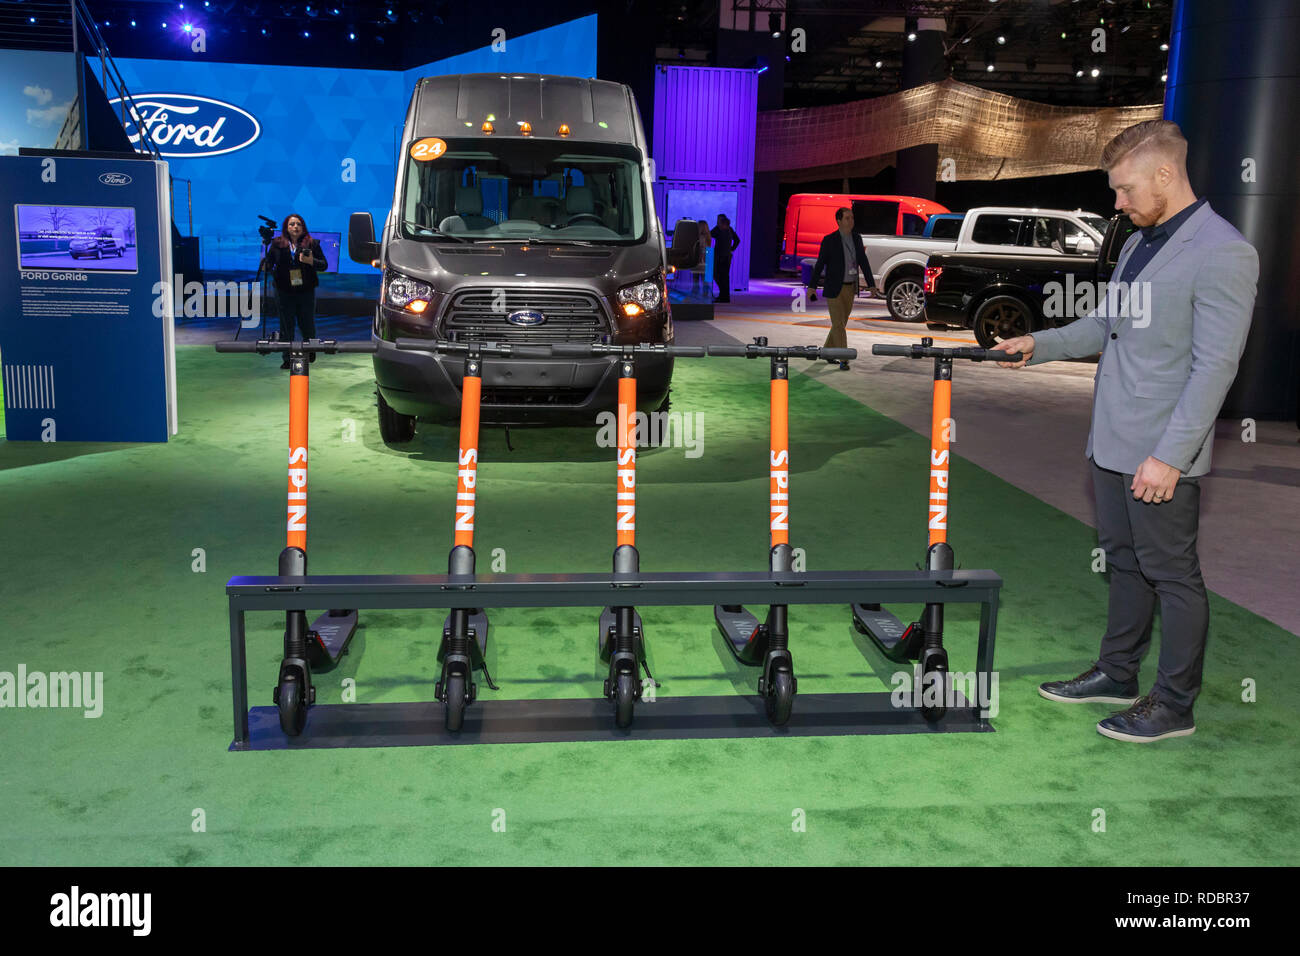 Detroit, Michigan - Spin scooters on display at the North American International Auto Show. Spin is owned by the Ford Motor Co. - Stock Image